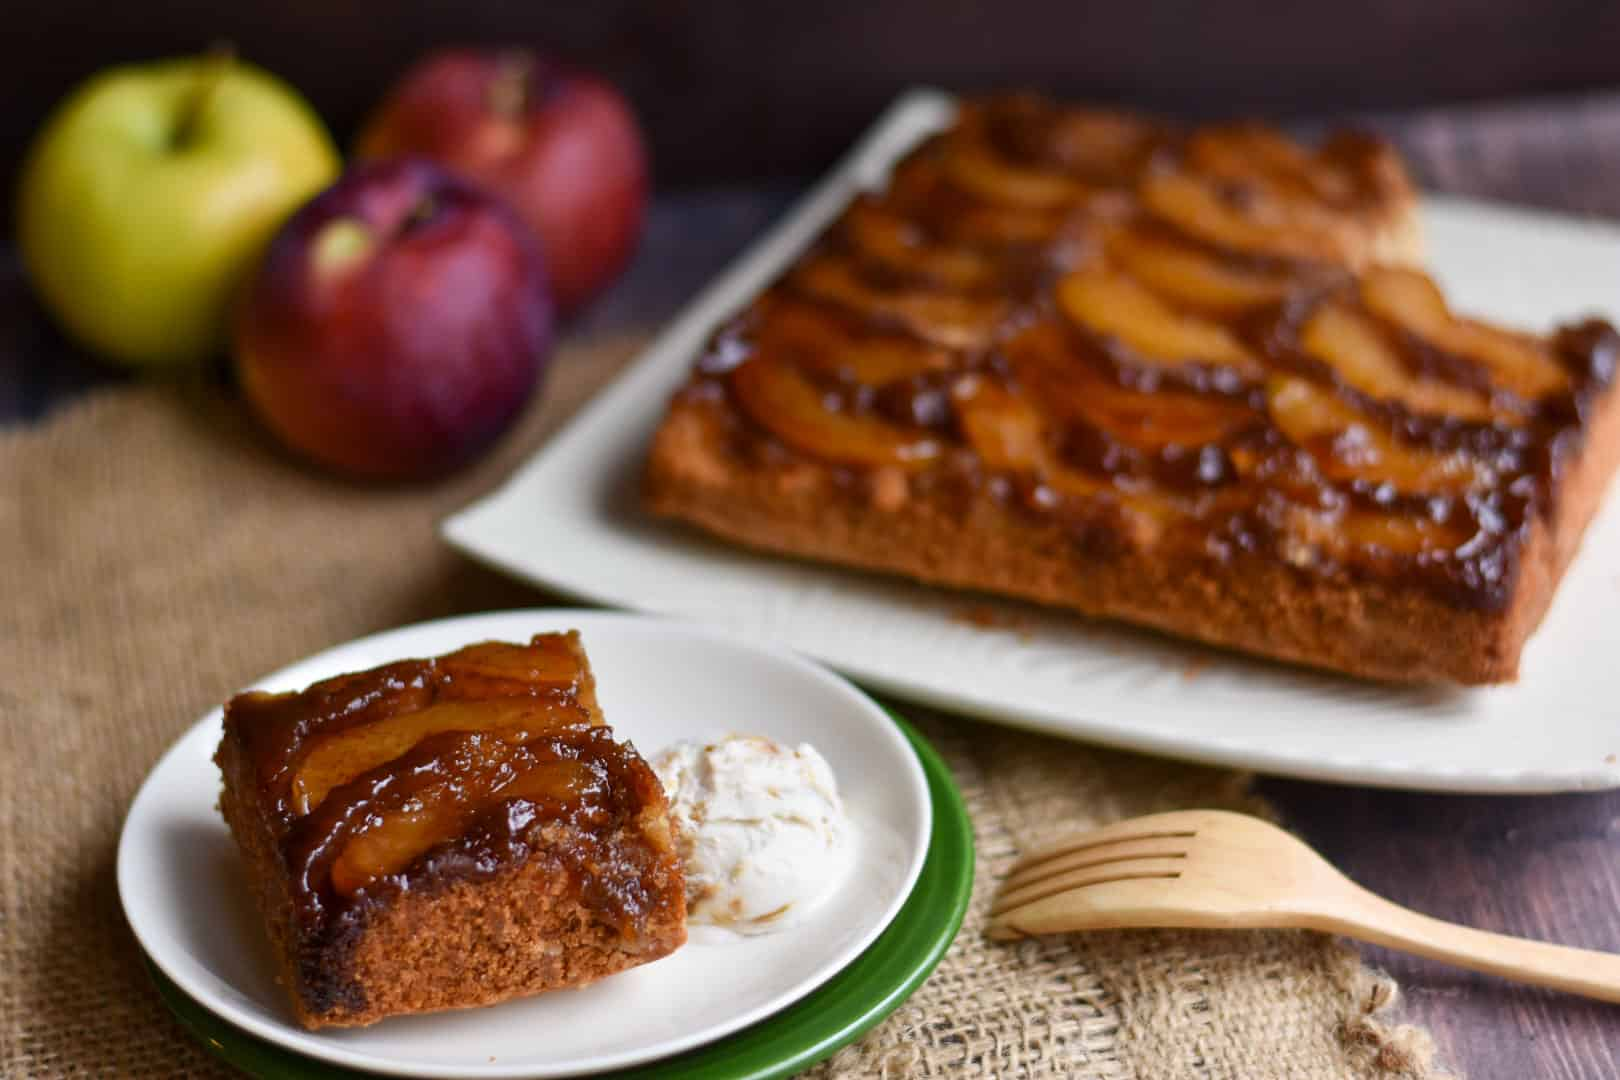 closeup image of apple cinnamon upside down cake slice on a plate with a fork